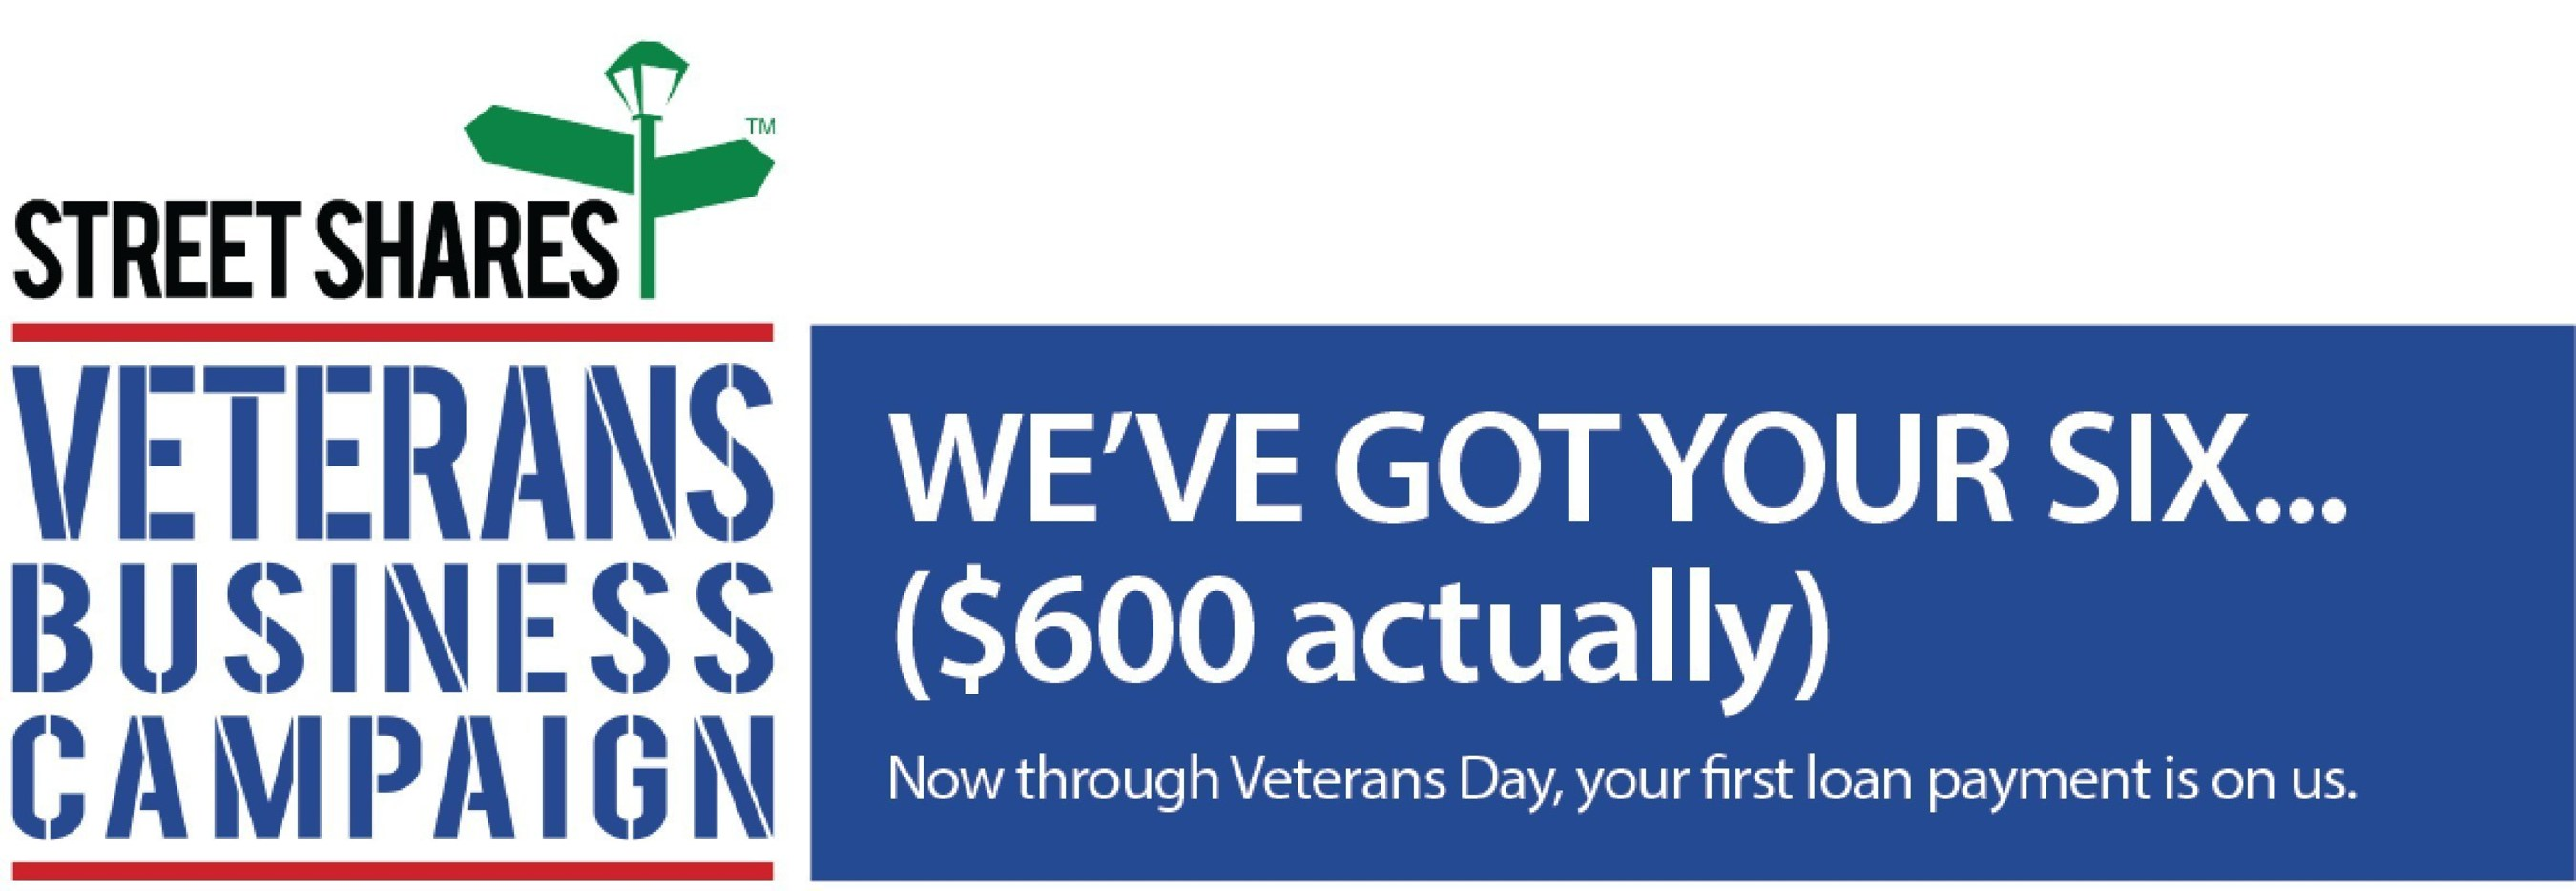 To celebrate National Veterans Small Business Week and Veterans Day, StreetShares introduces 'GOT YOUR SIX' campaign, will cover first loan payment for veteran borrowers on StreetShares marketplace, up to $600